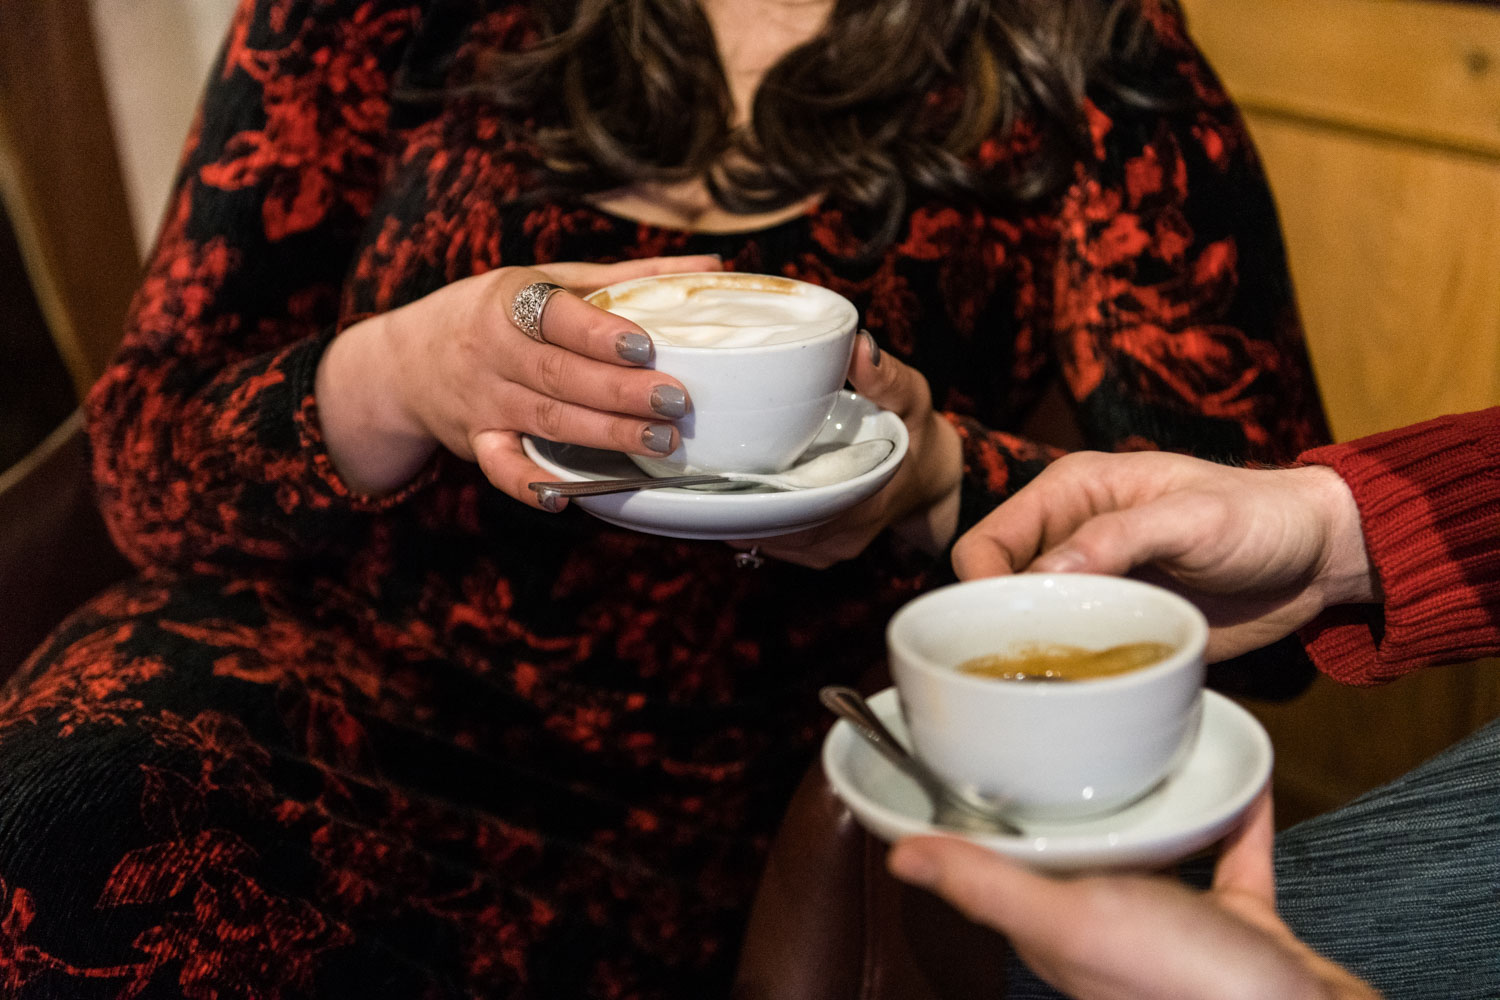 Andrea + Scott | Dog Lovers Cafe Coffee Shop Formal Spring Sunrise Creative Organic Romantic Engagement Session | Boston and New England Engagement Photography | Lorna Stell Photo